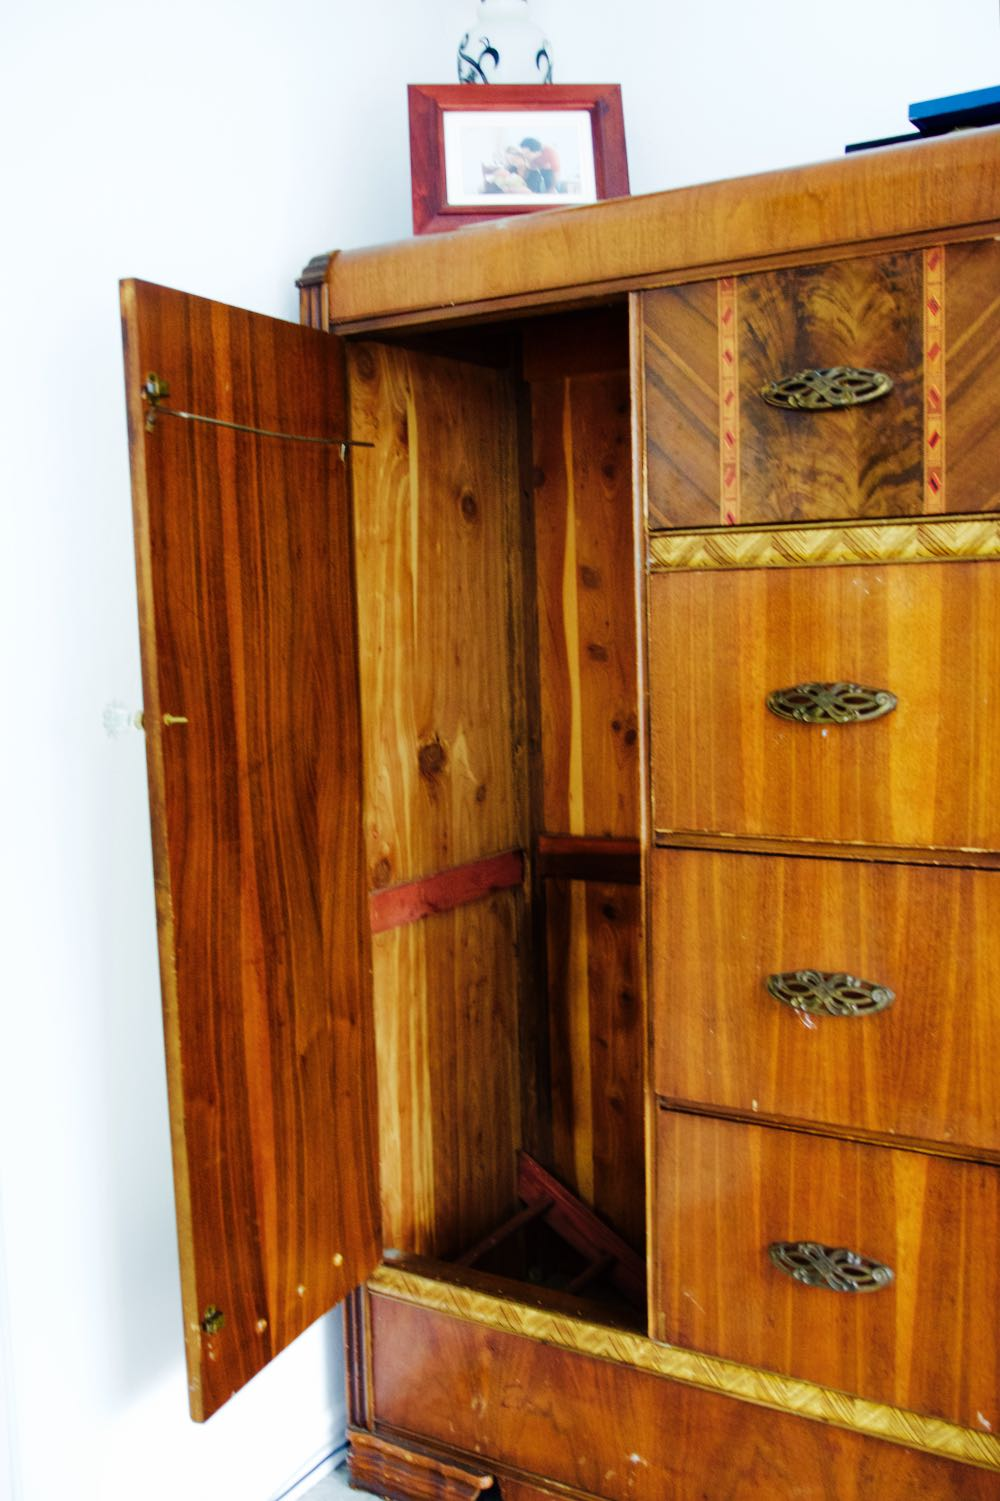 A wood wardrobe and dresser from the 1930s